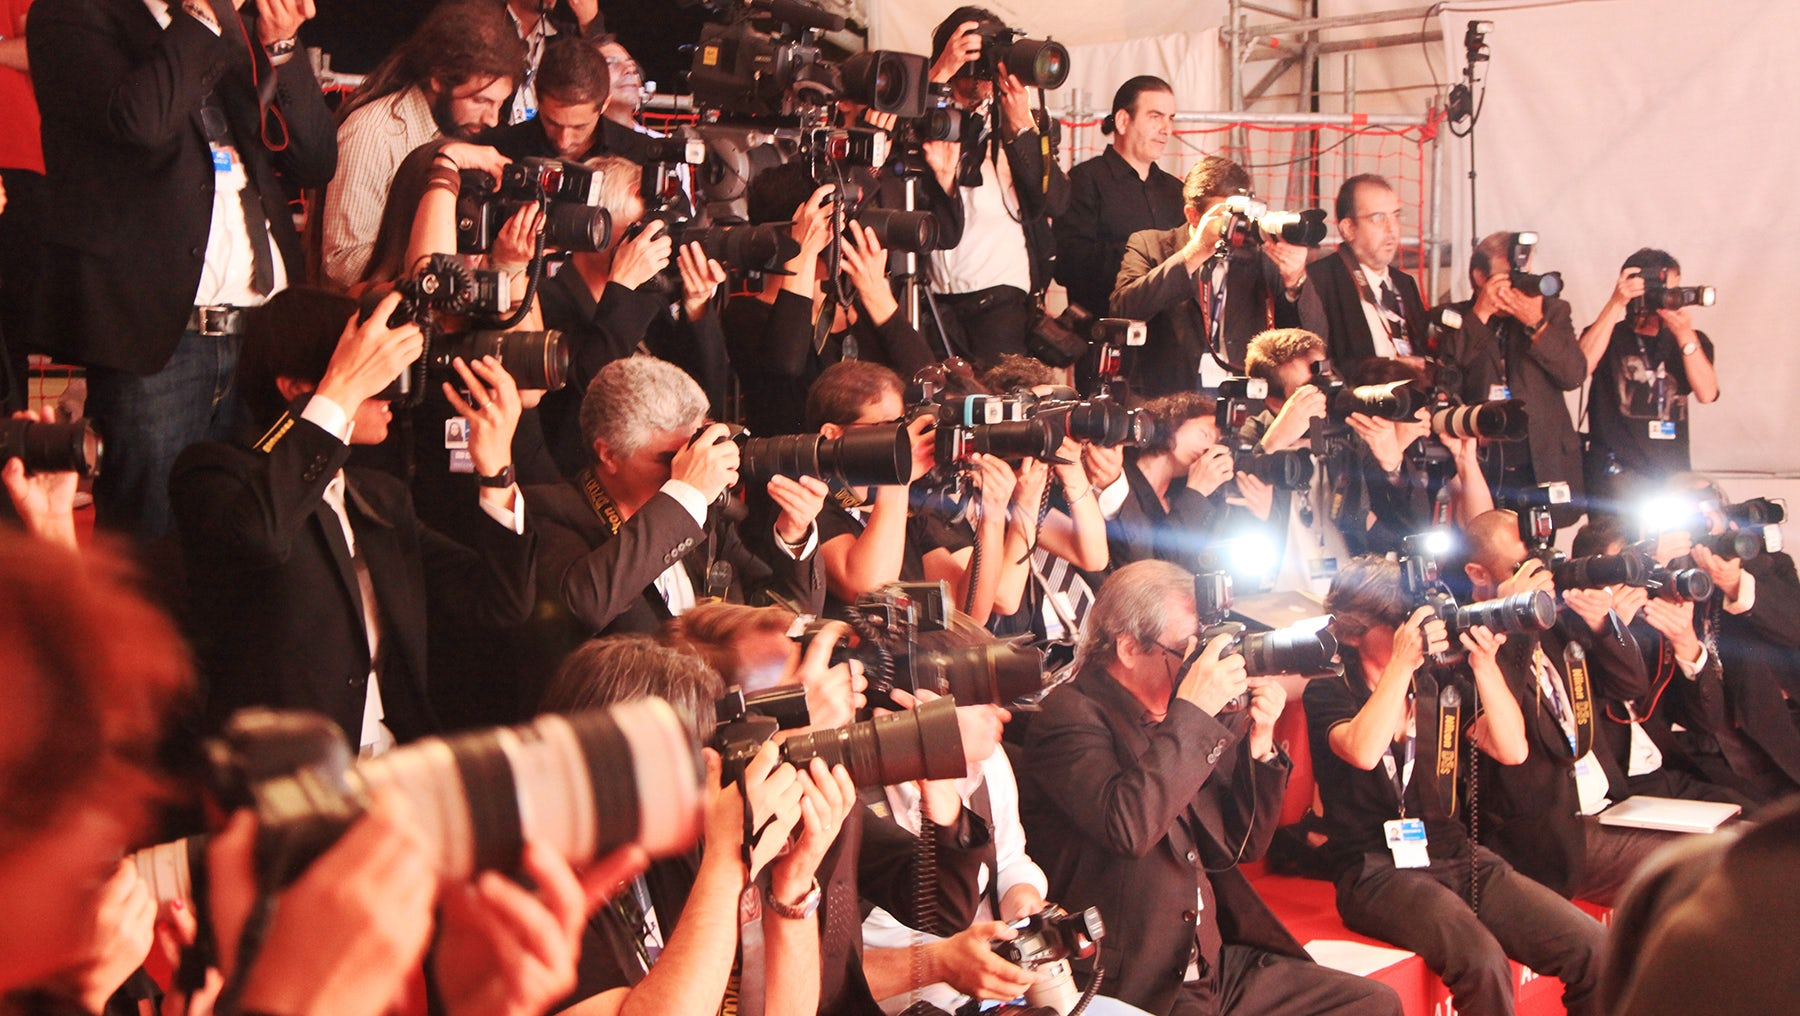 Photographers on the red carpet | Source: Shutterstock